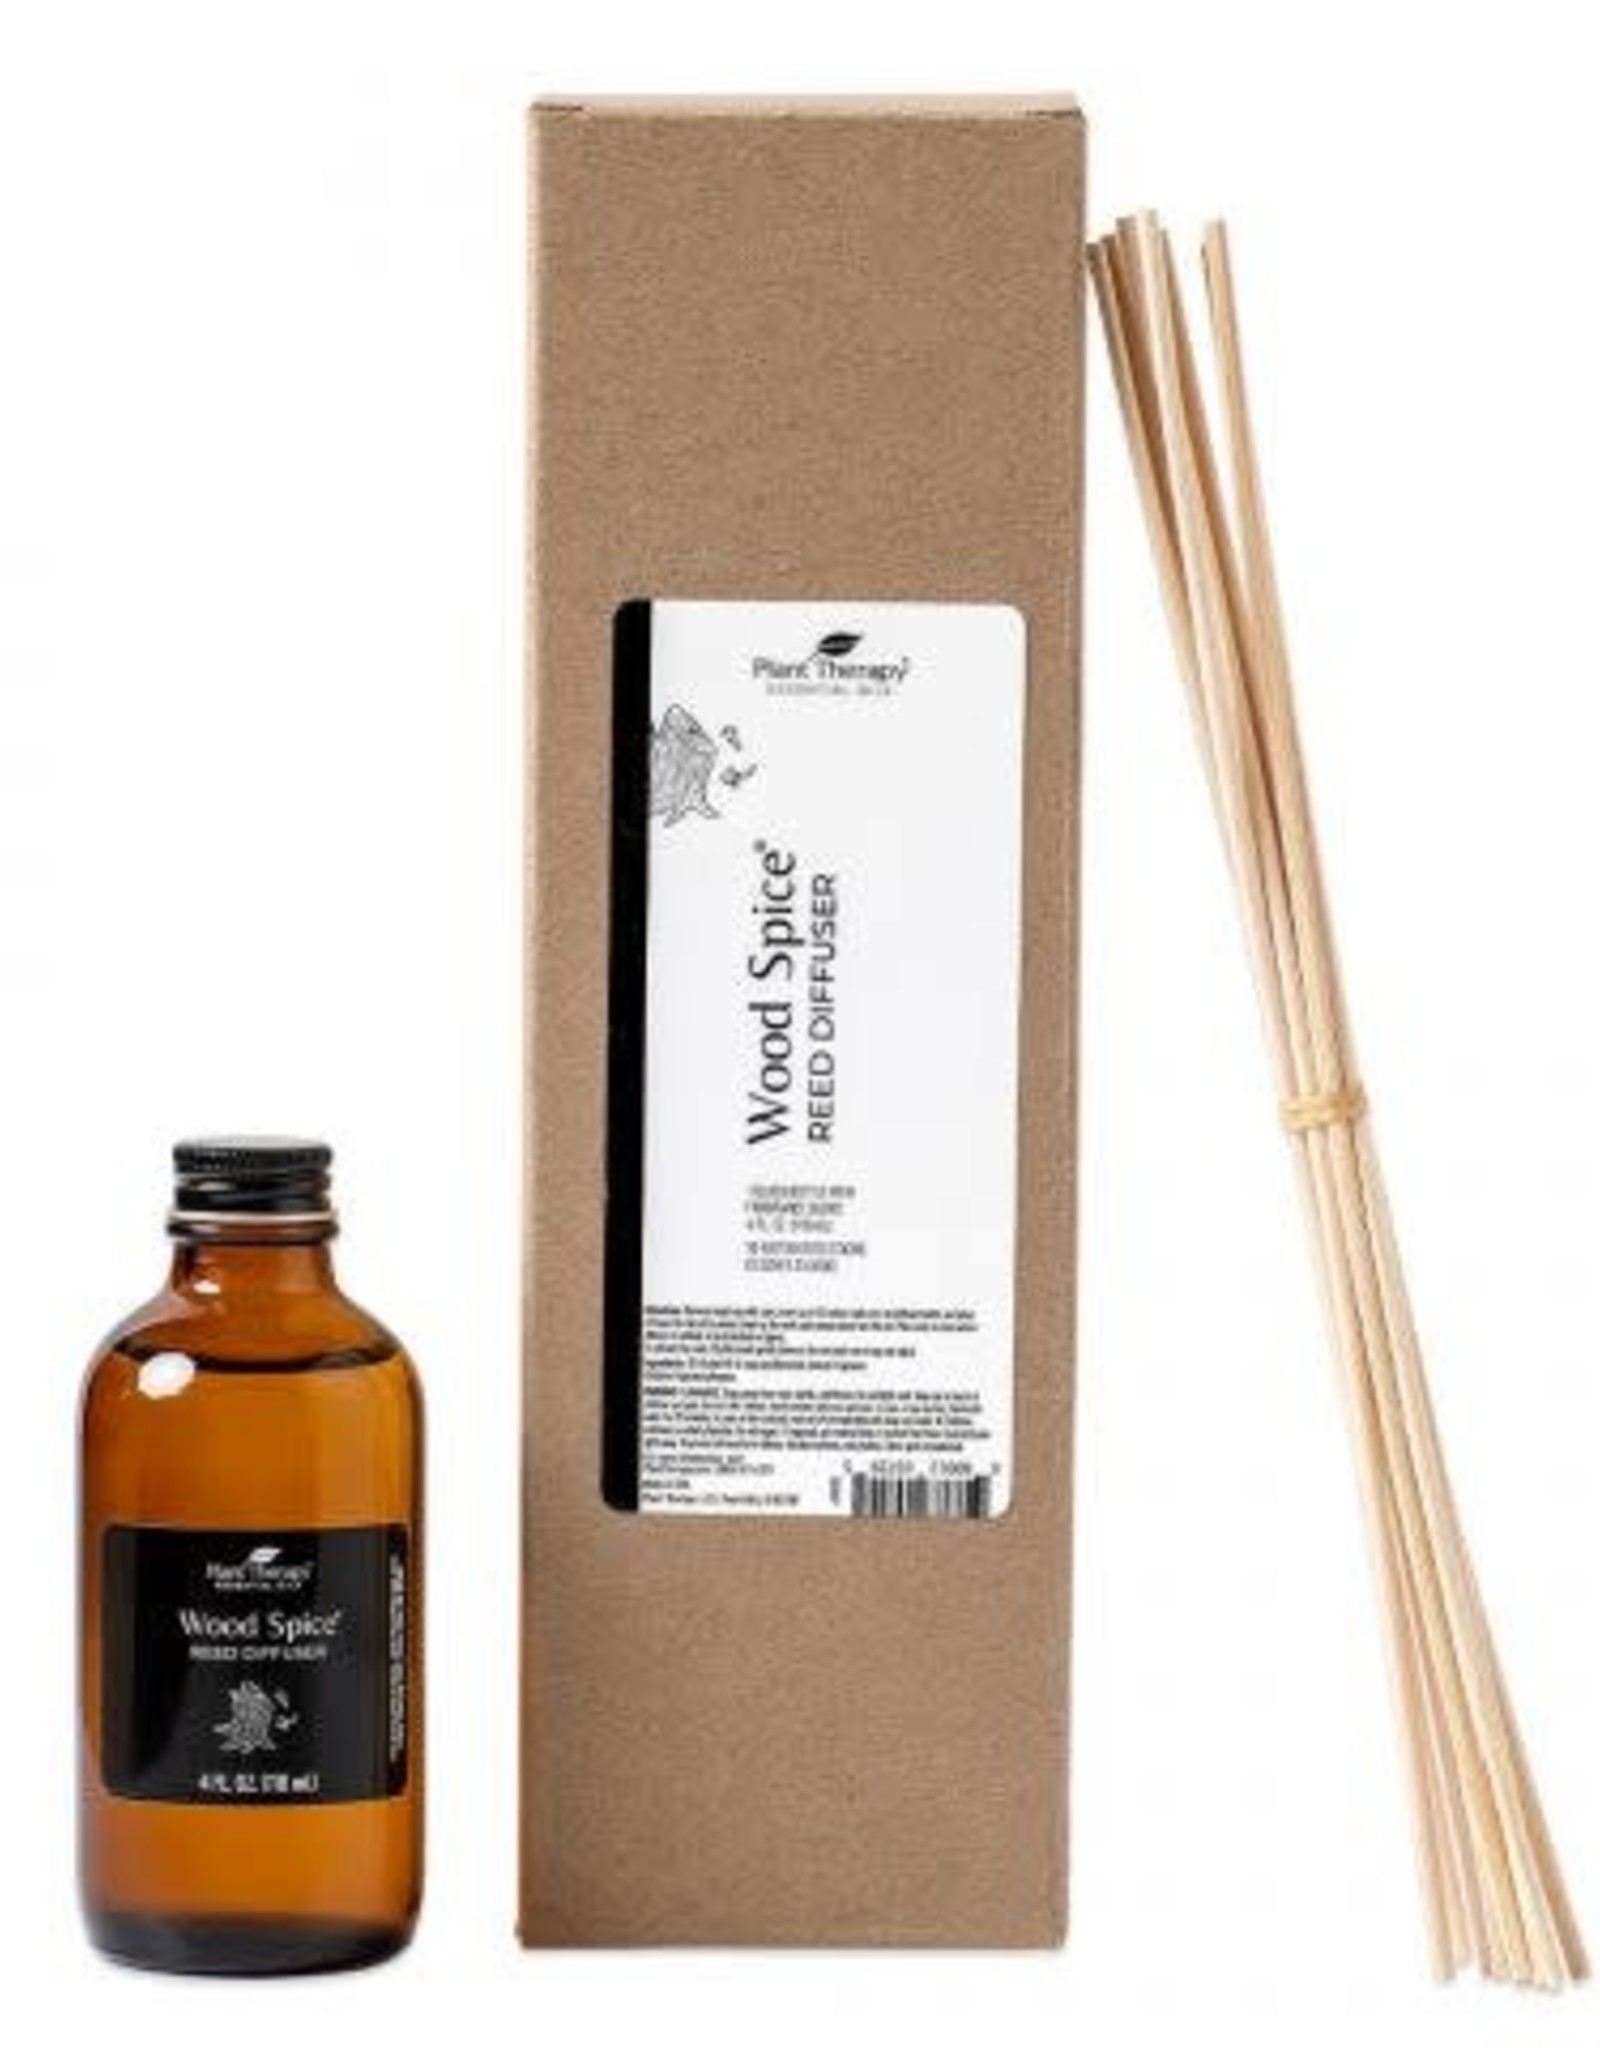 Plant Therapy Plant Therapy Reed Diffuser Wood Spice